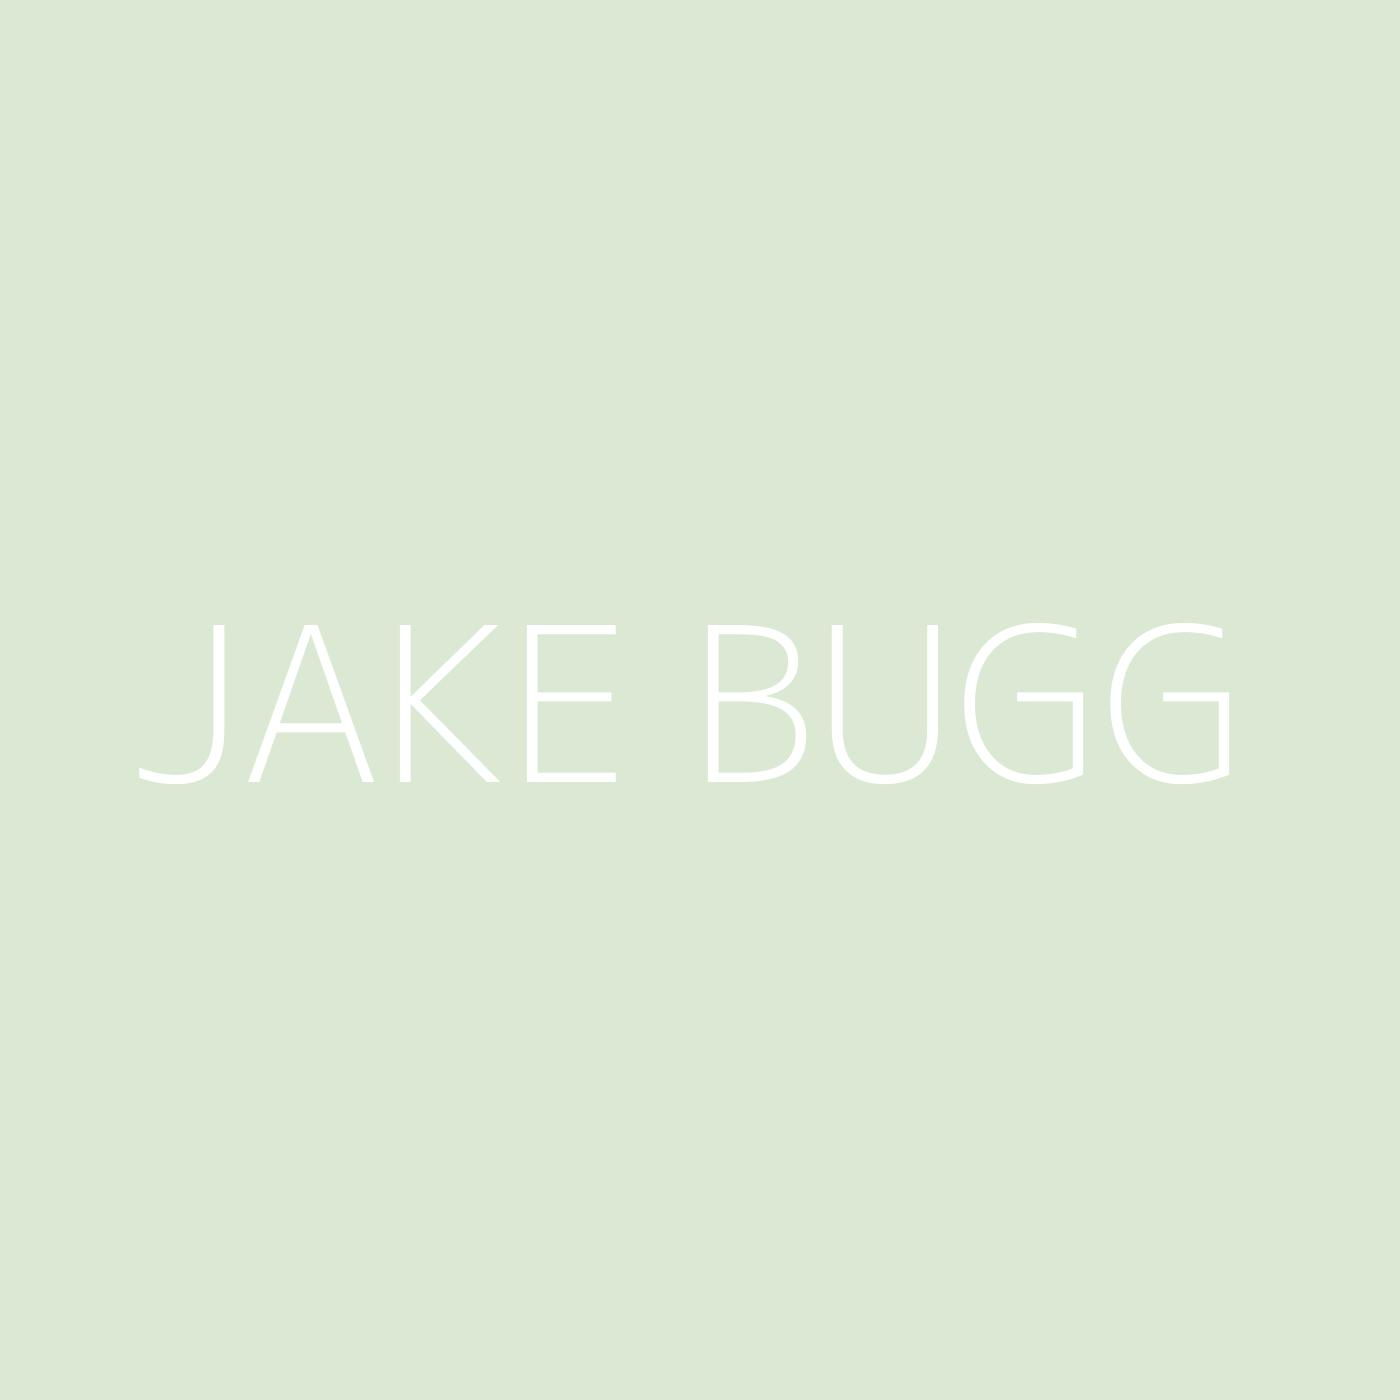 Jake Bugg Playlist Artwork